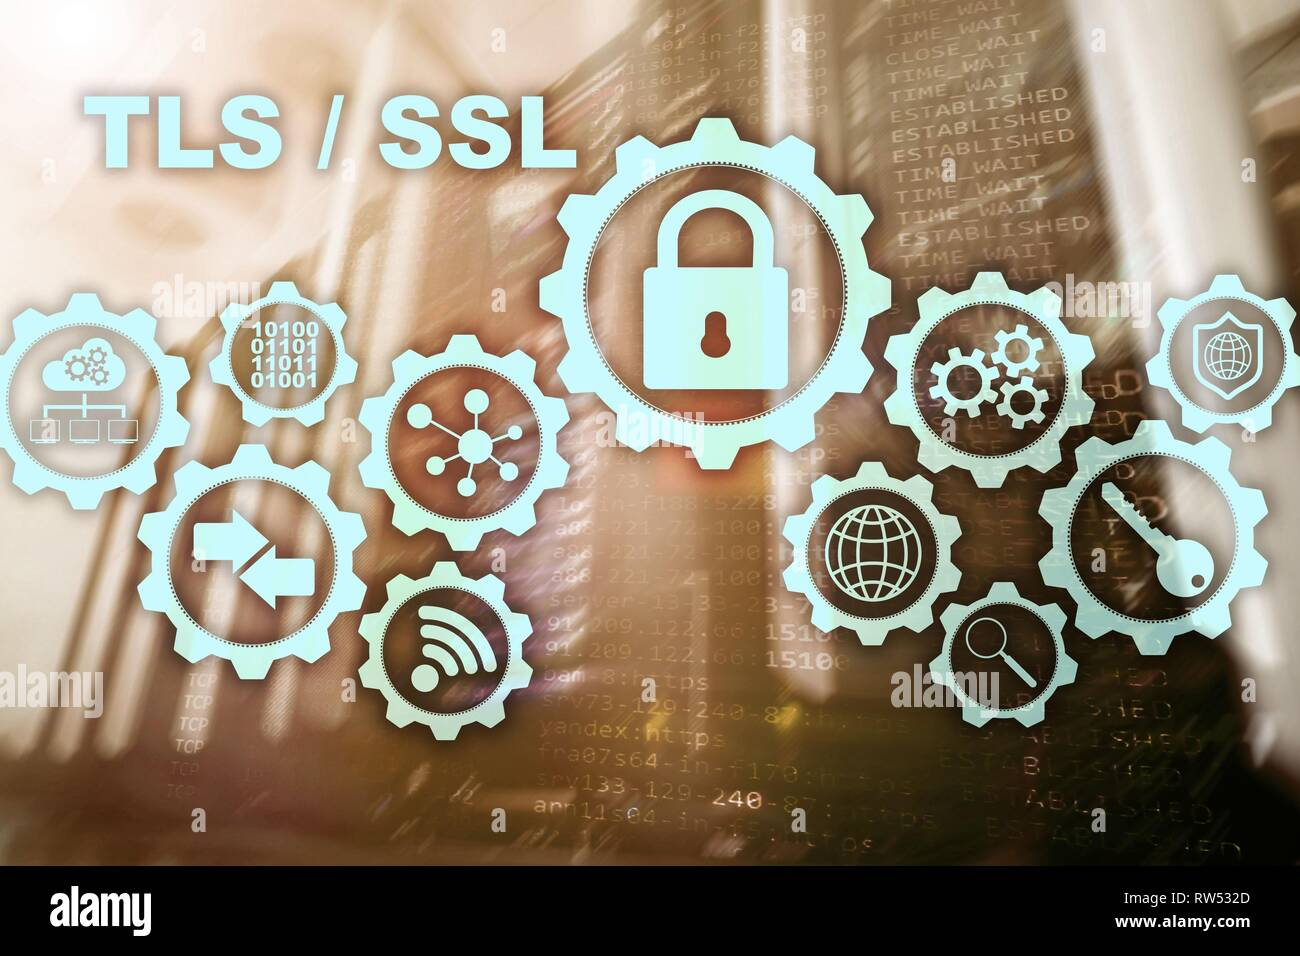 Transport Layer Security. Secure Socket Layer. TLS SSL. ryptographic protocols provide secured communications - Stock Image